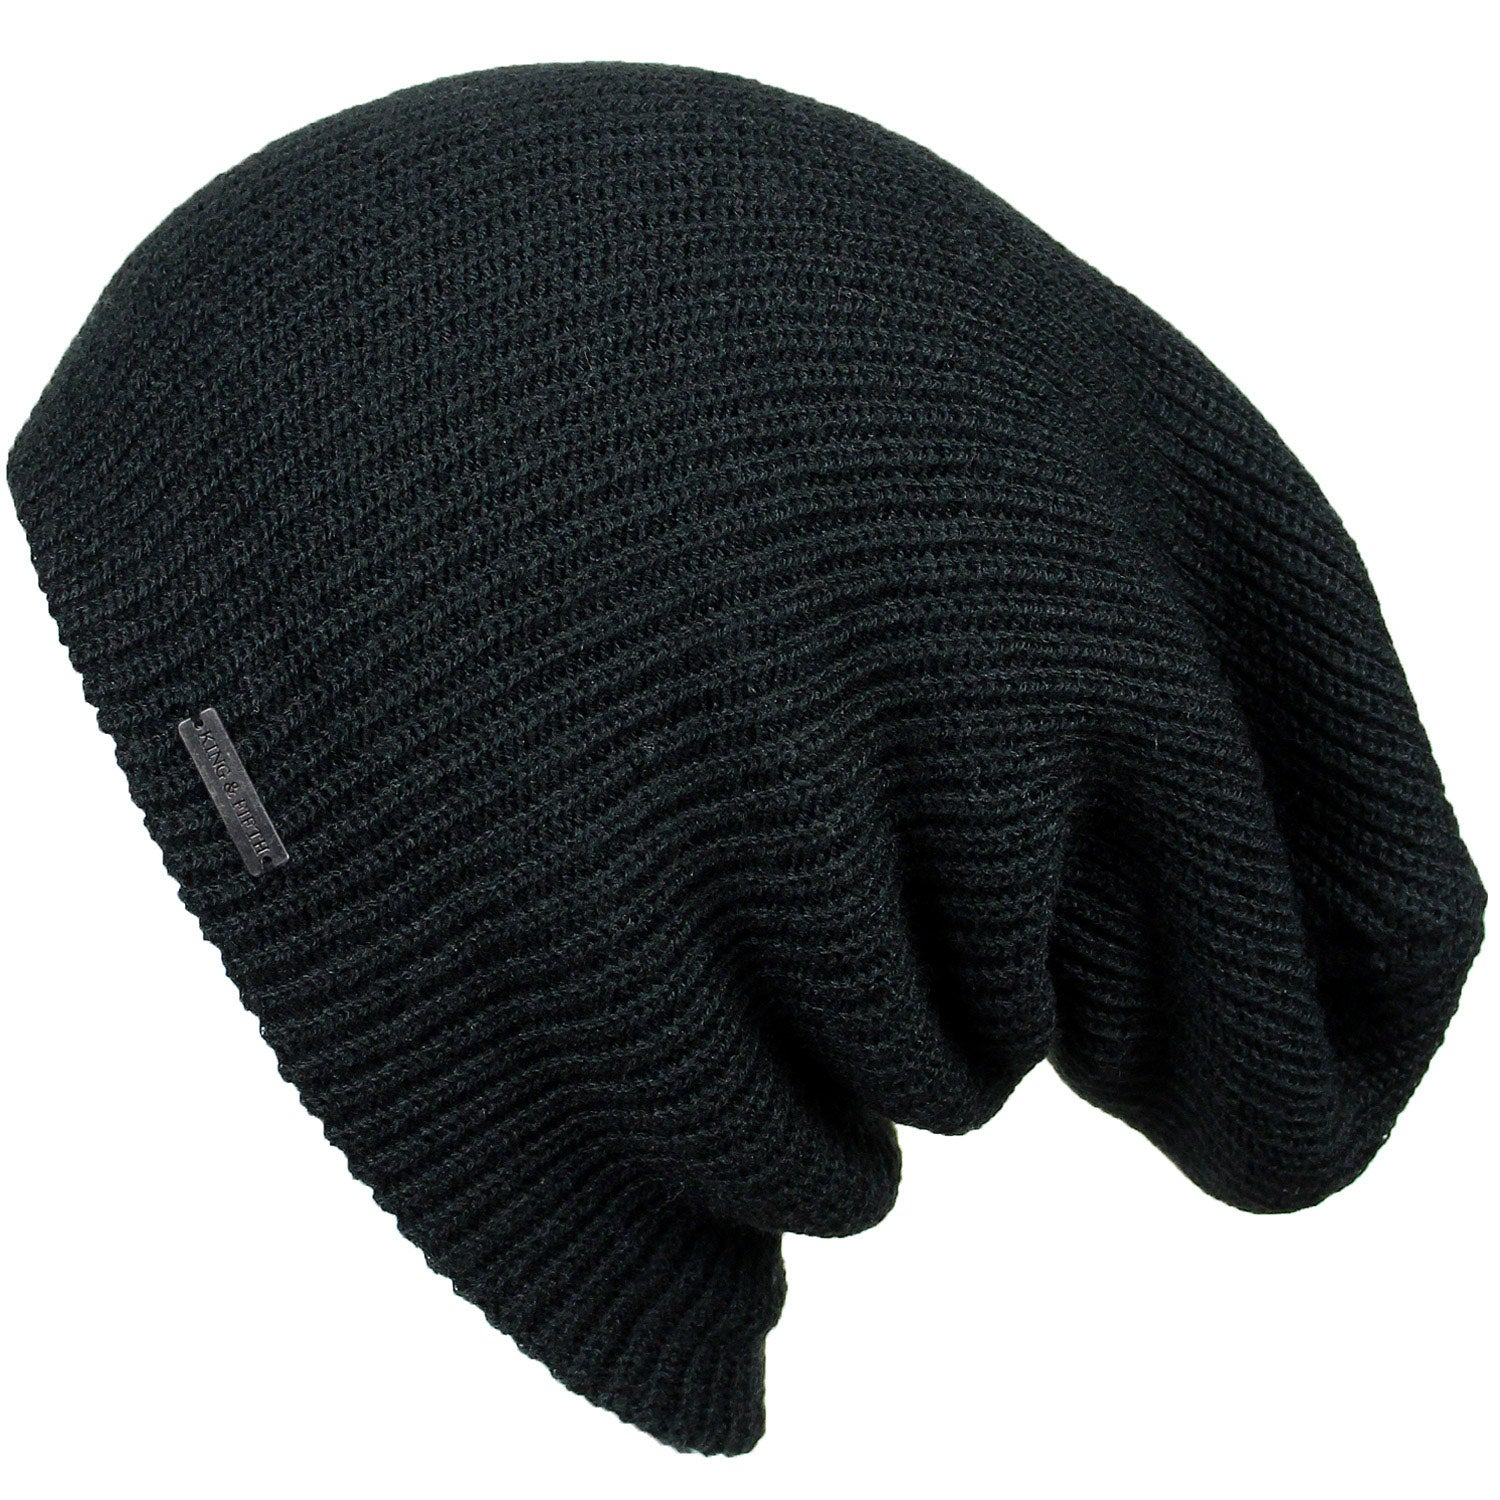 Womens Slouchy Beanie - The Forte XL